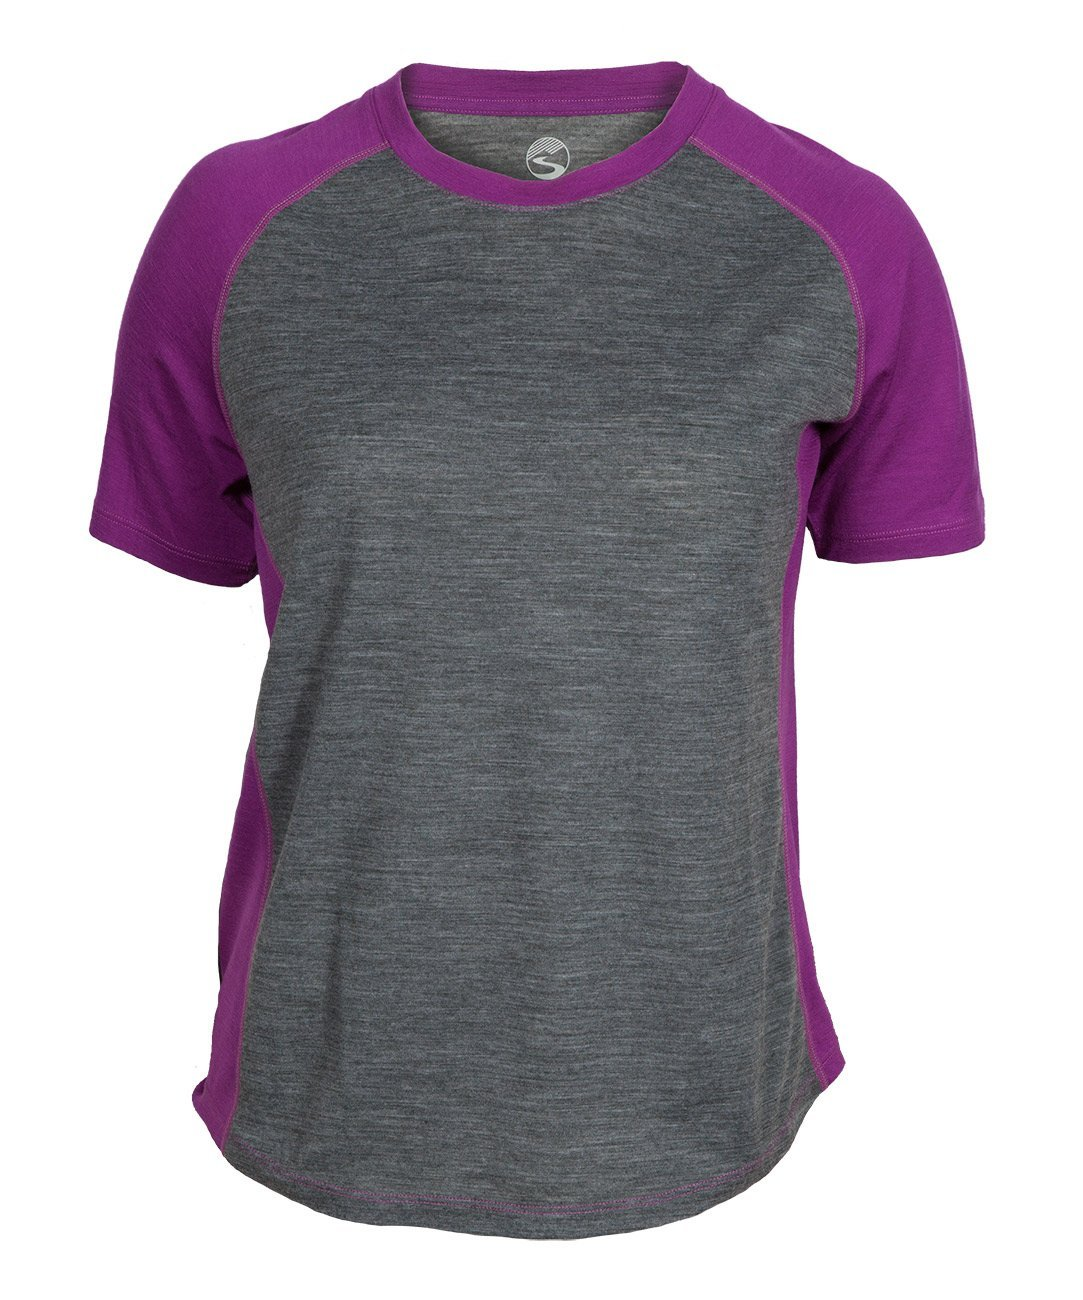 Women's Apex Merino Tech T-Shirt - Hollyhock by Showers Pass